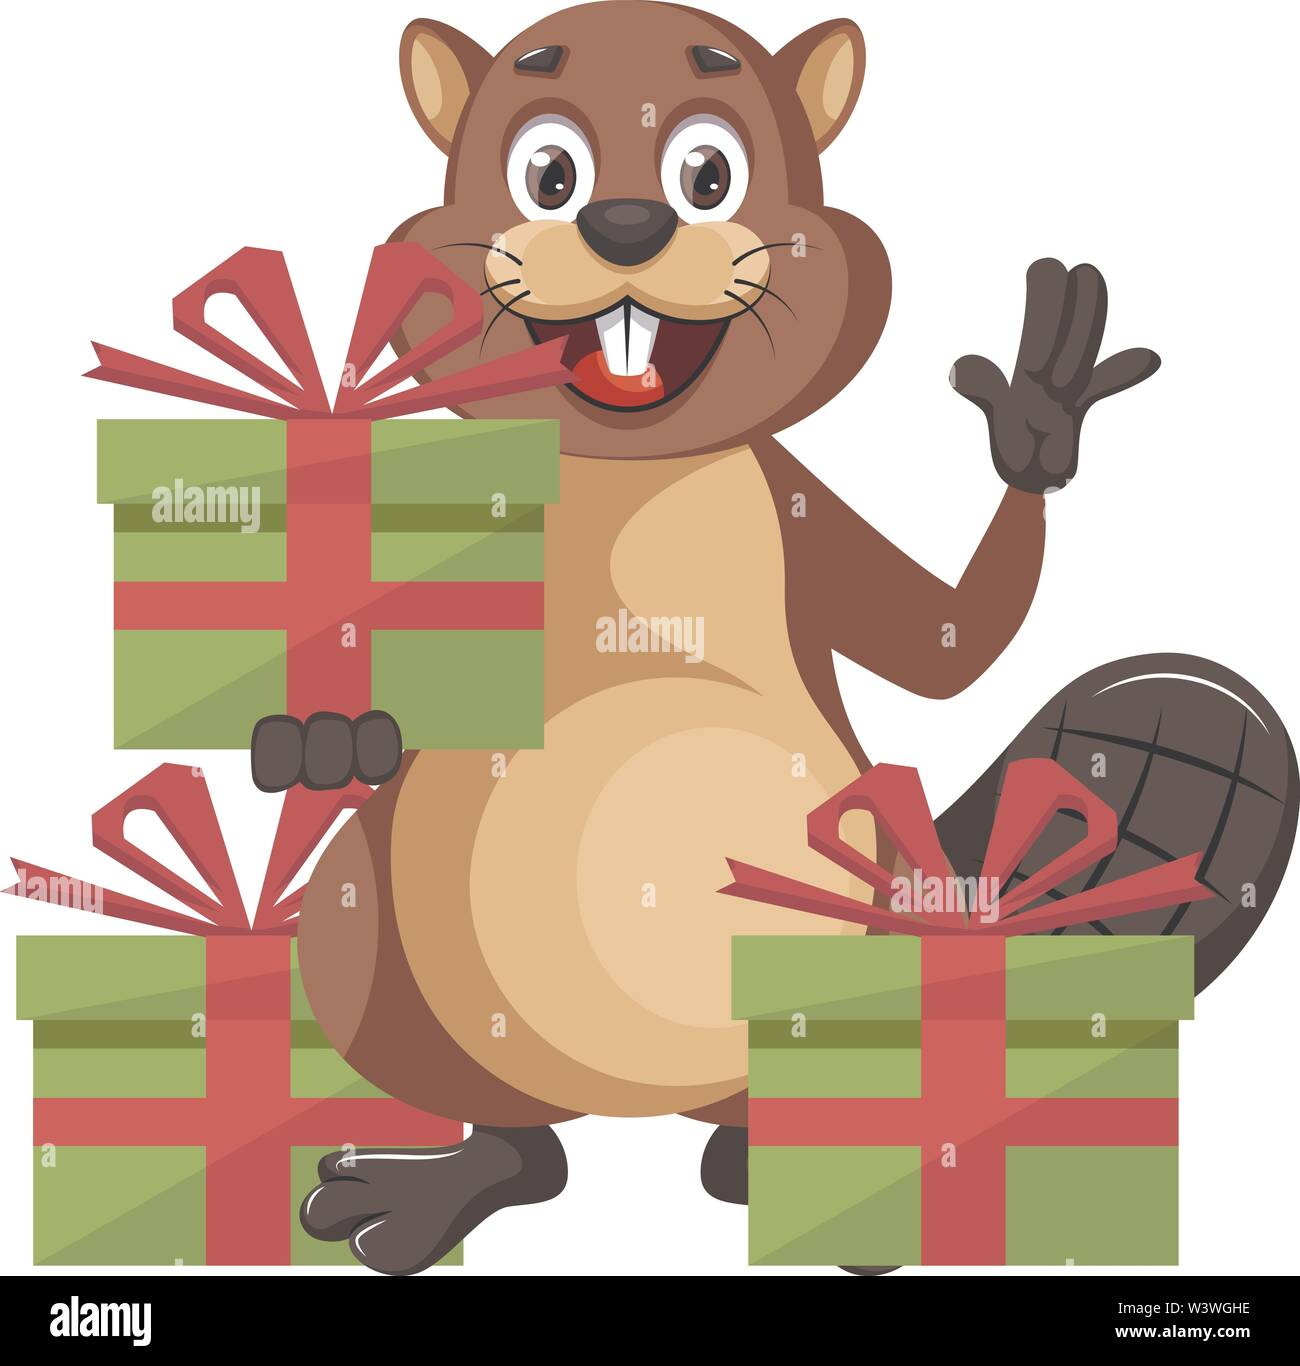 Beaver with presents, illustration, vector on white background. - Stock Image